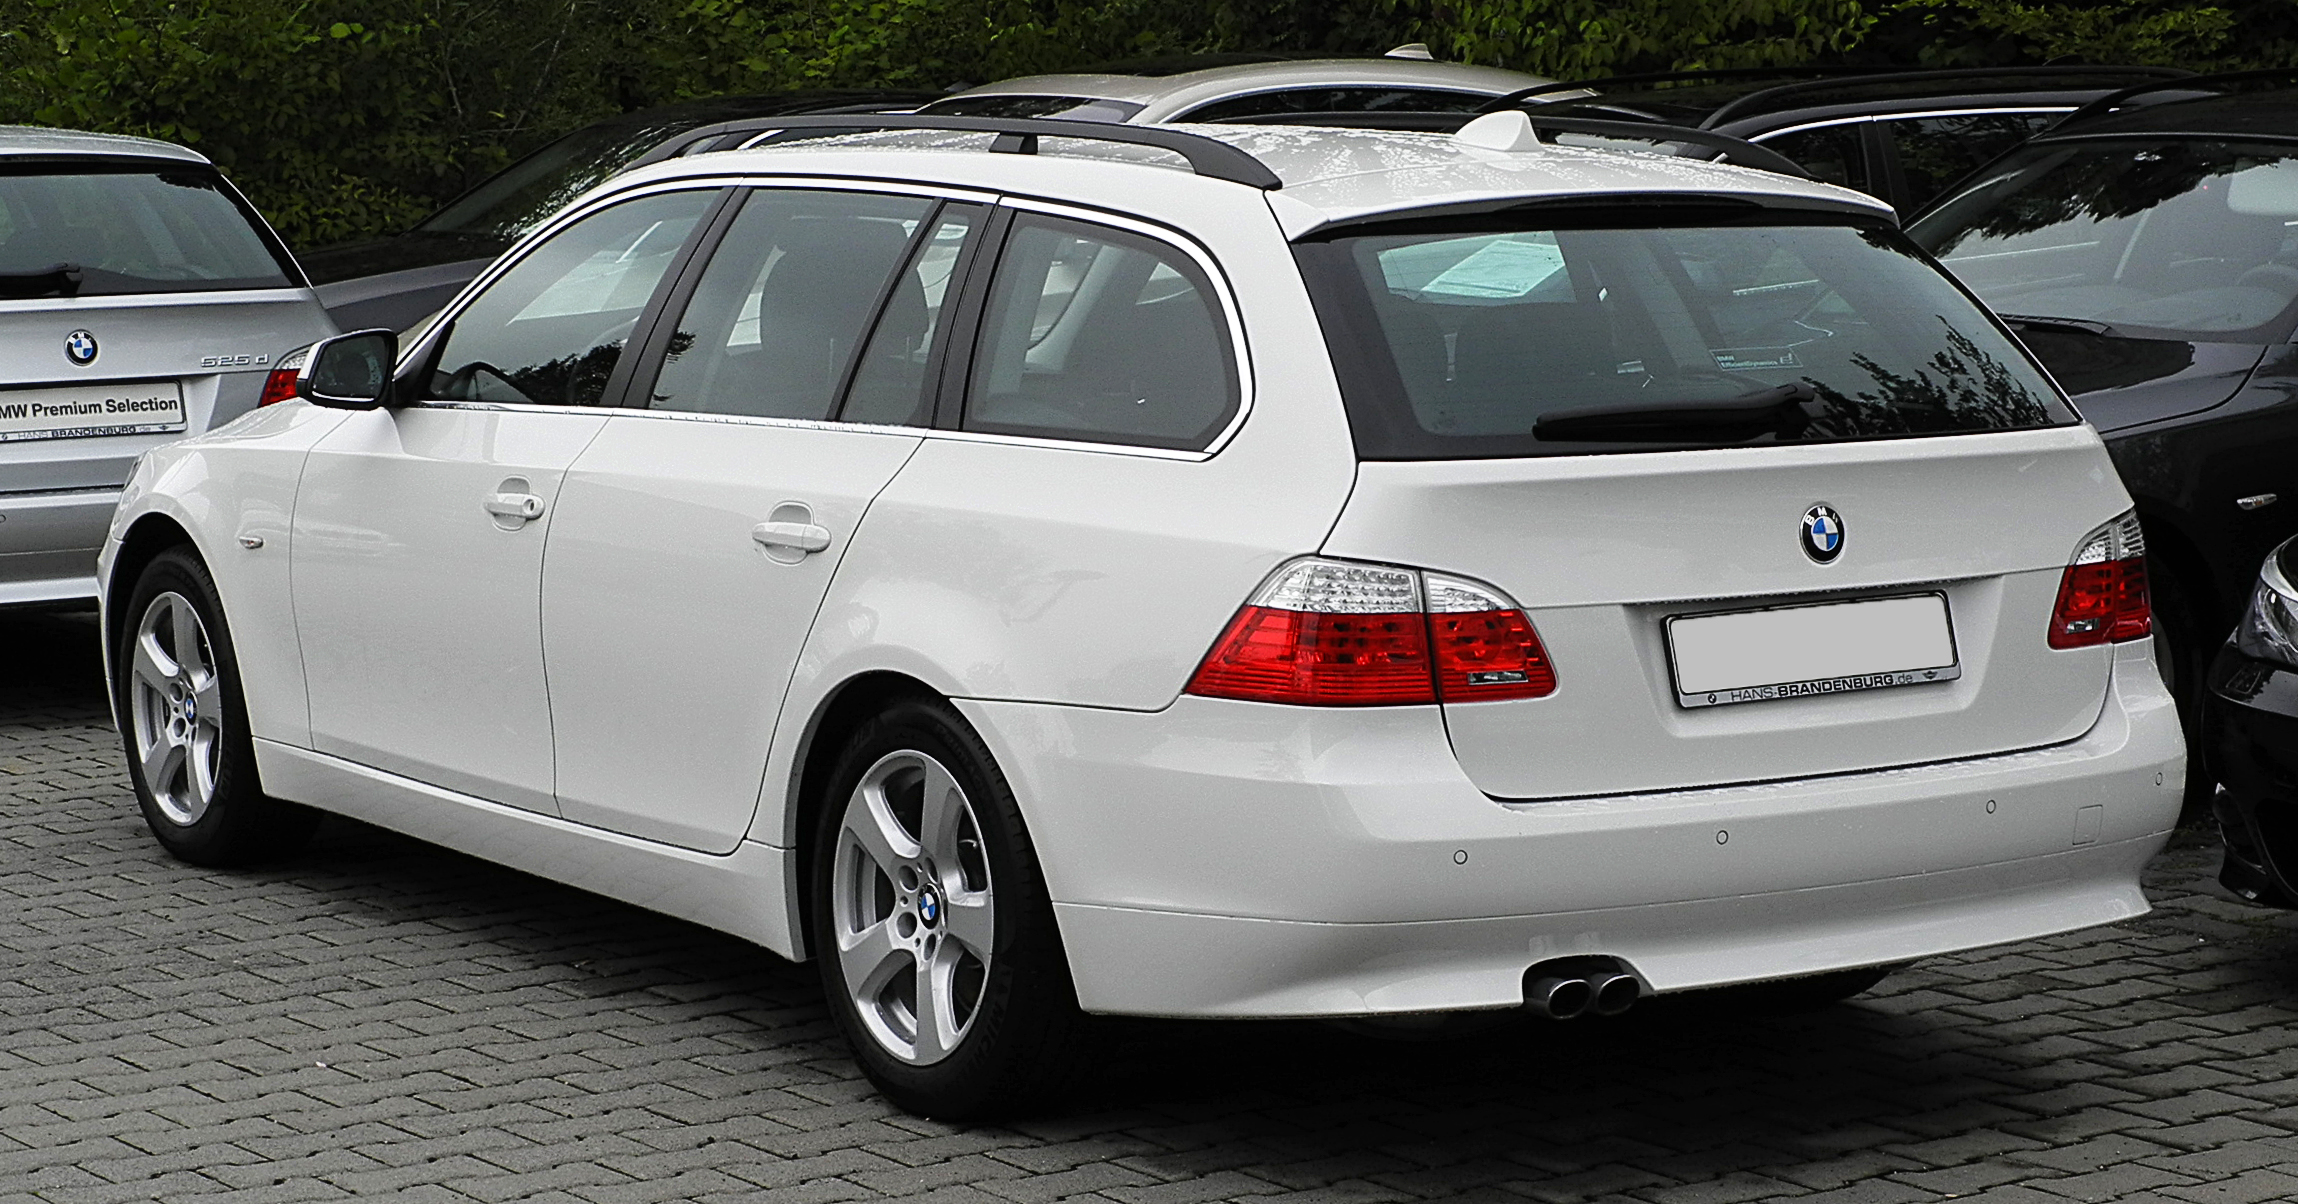 file bmw 525d xdrive touring e61 facelift heckansicht 26 juni 2011. Black Bedroom Furniture Sets. Home Design Ideas